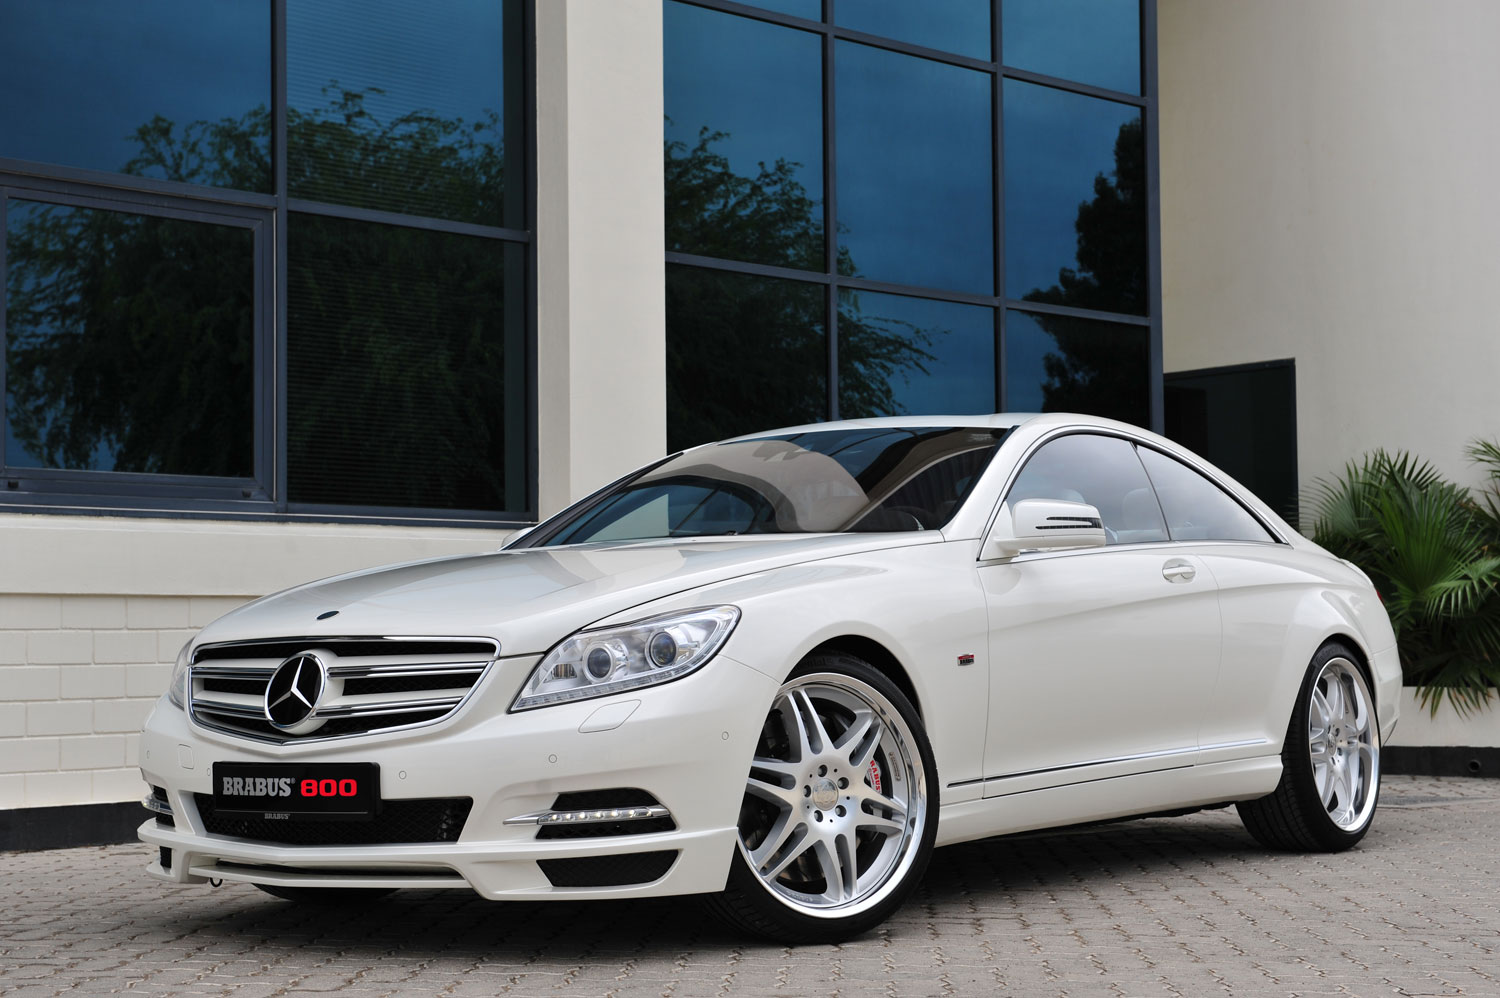 brabus builds 800 hp mercedes benz cl coupe. Black Bedroom Furniture Sets. Home Design Ideas